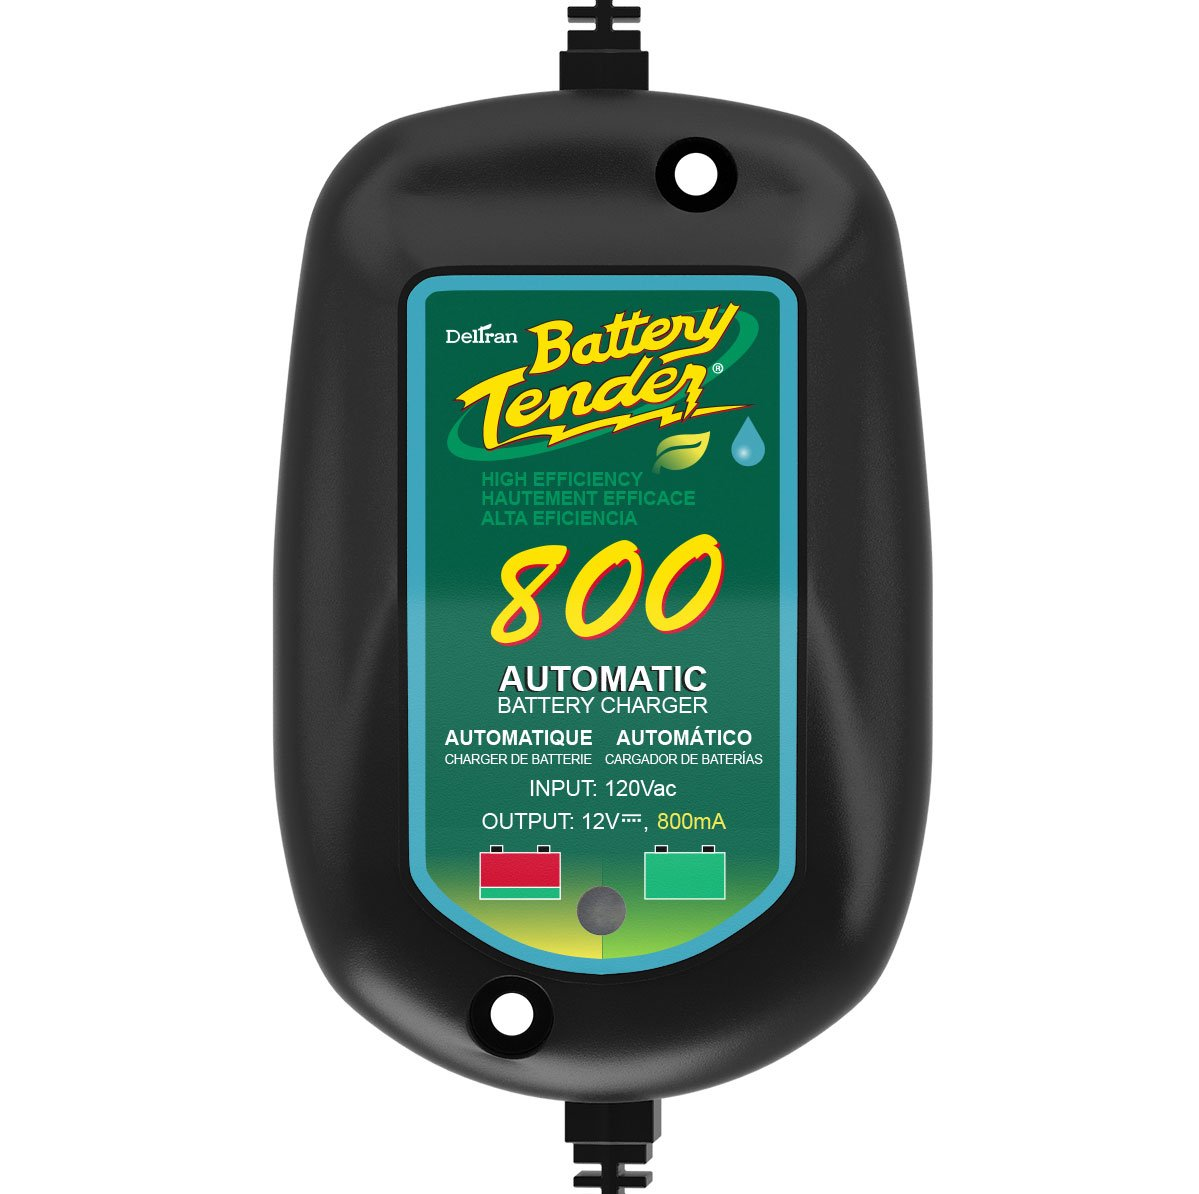 Battery Tender 800 is a SuperSmart Battery Charger that will Constantly Monitor, Charge, and Maintain your Battery. Its Encapsulated and Protected ...